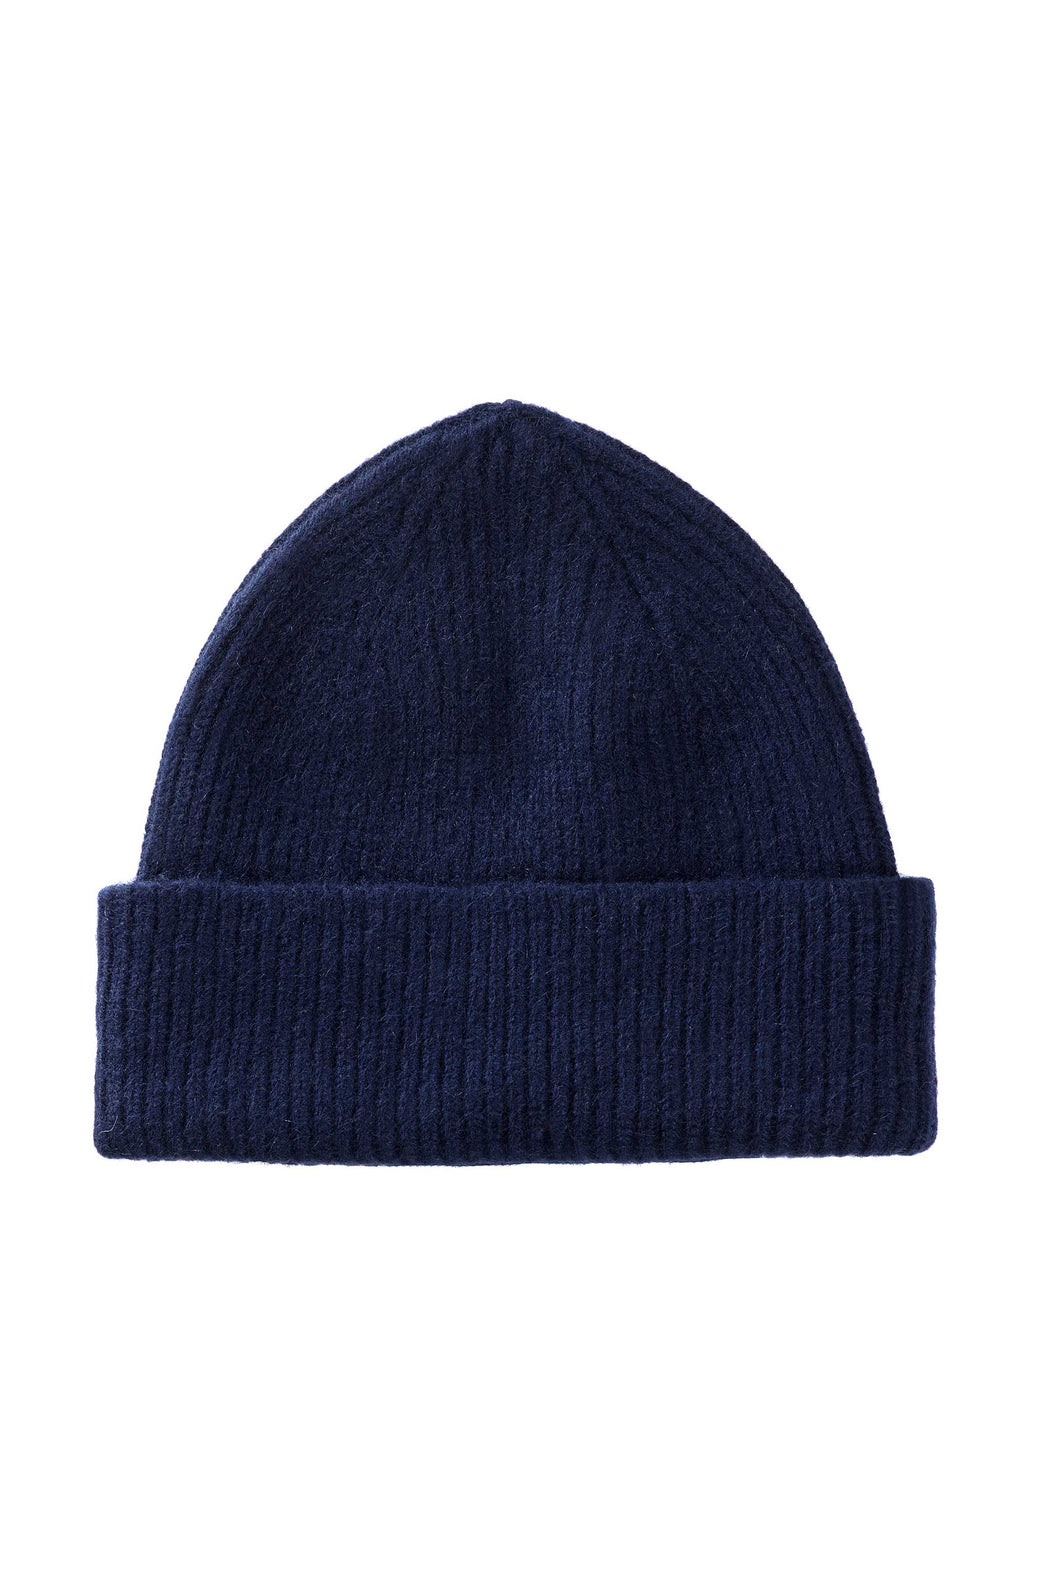 Le-Bonnet-Beanie-Midnight